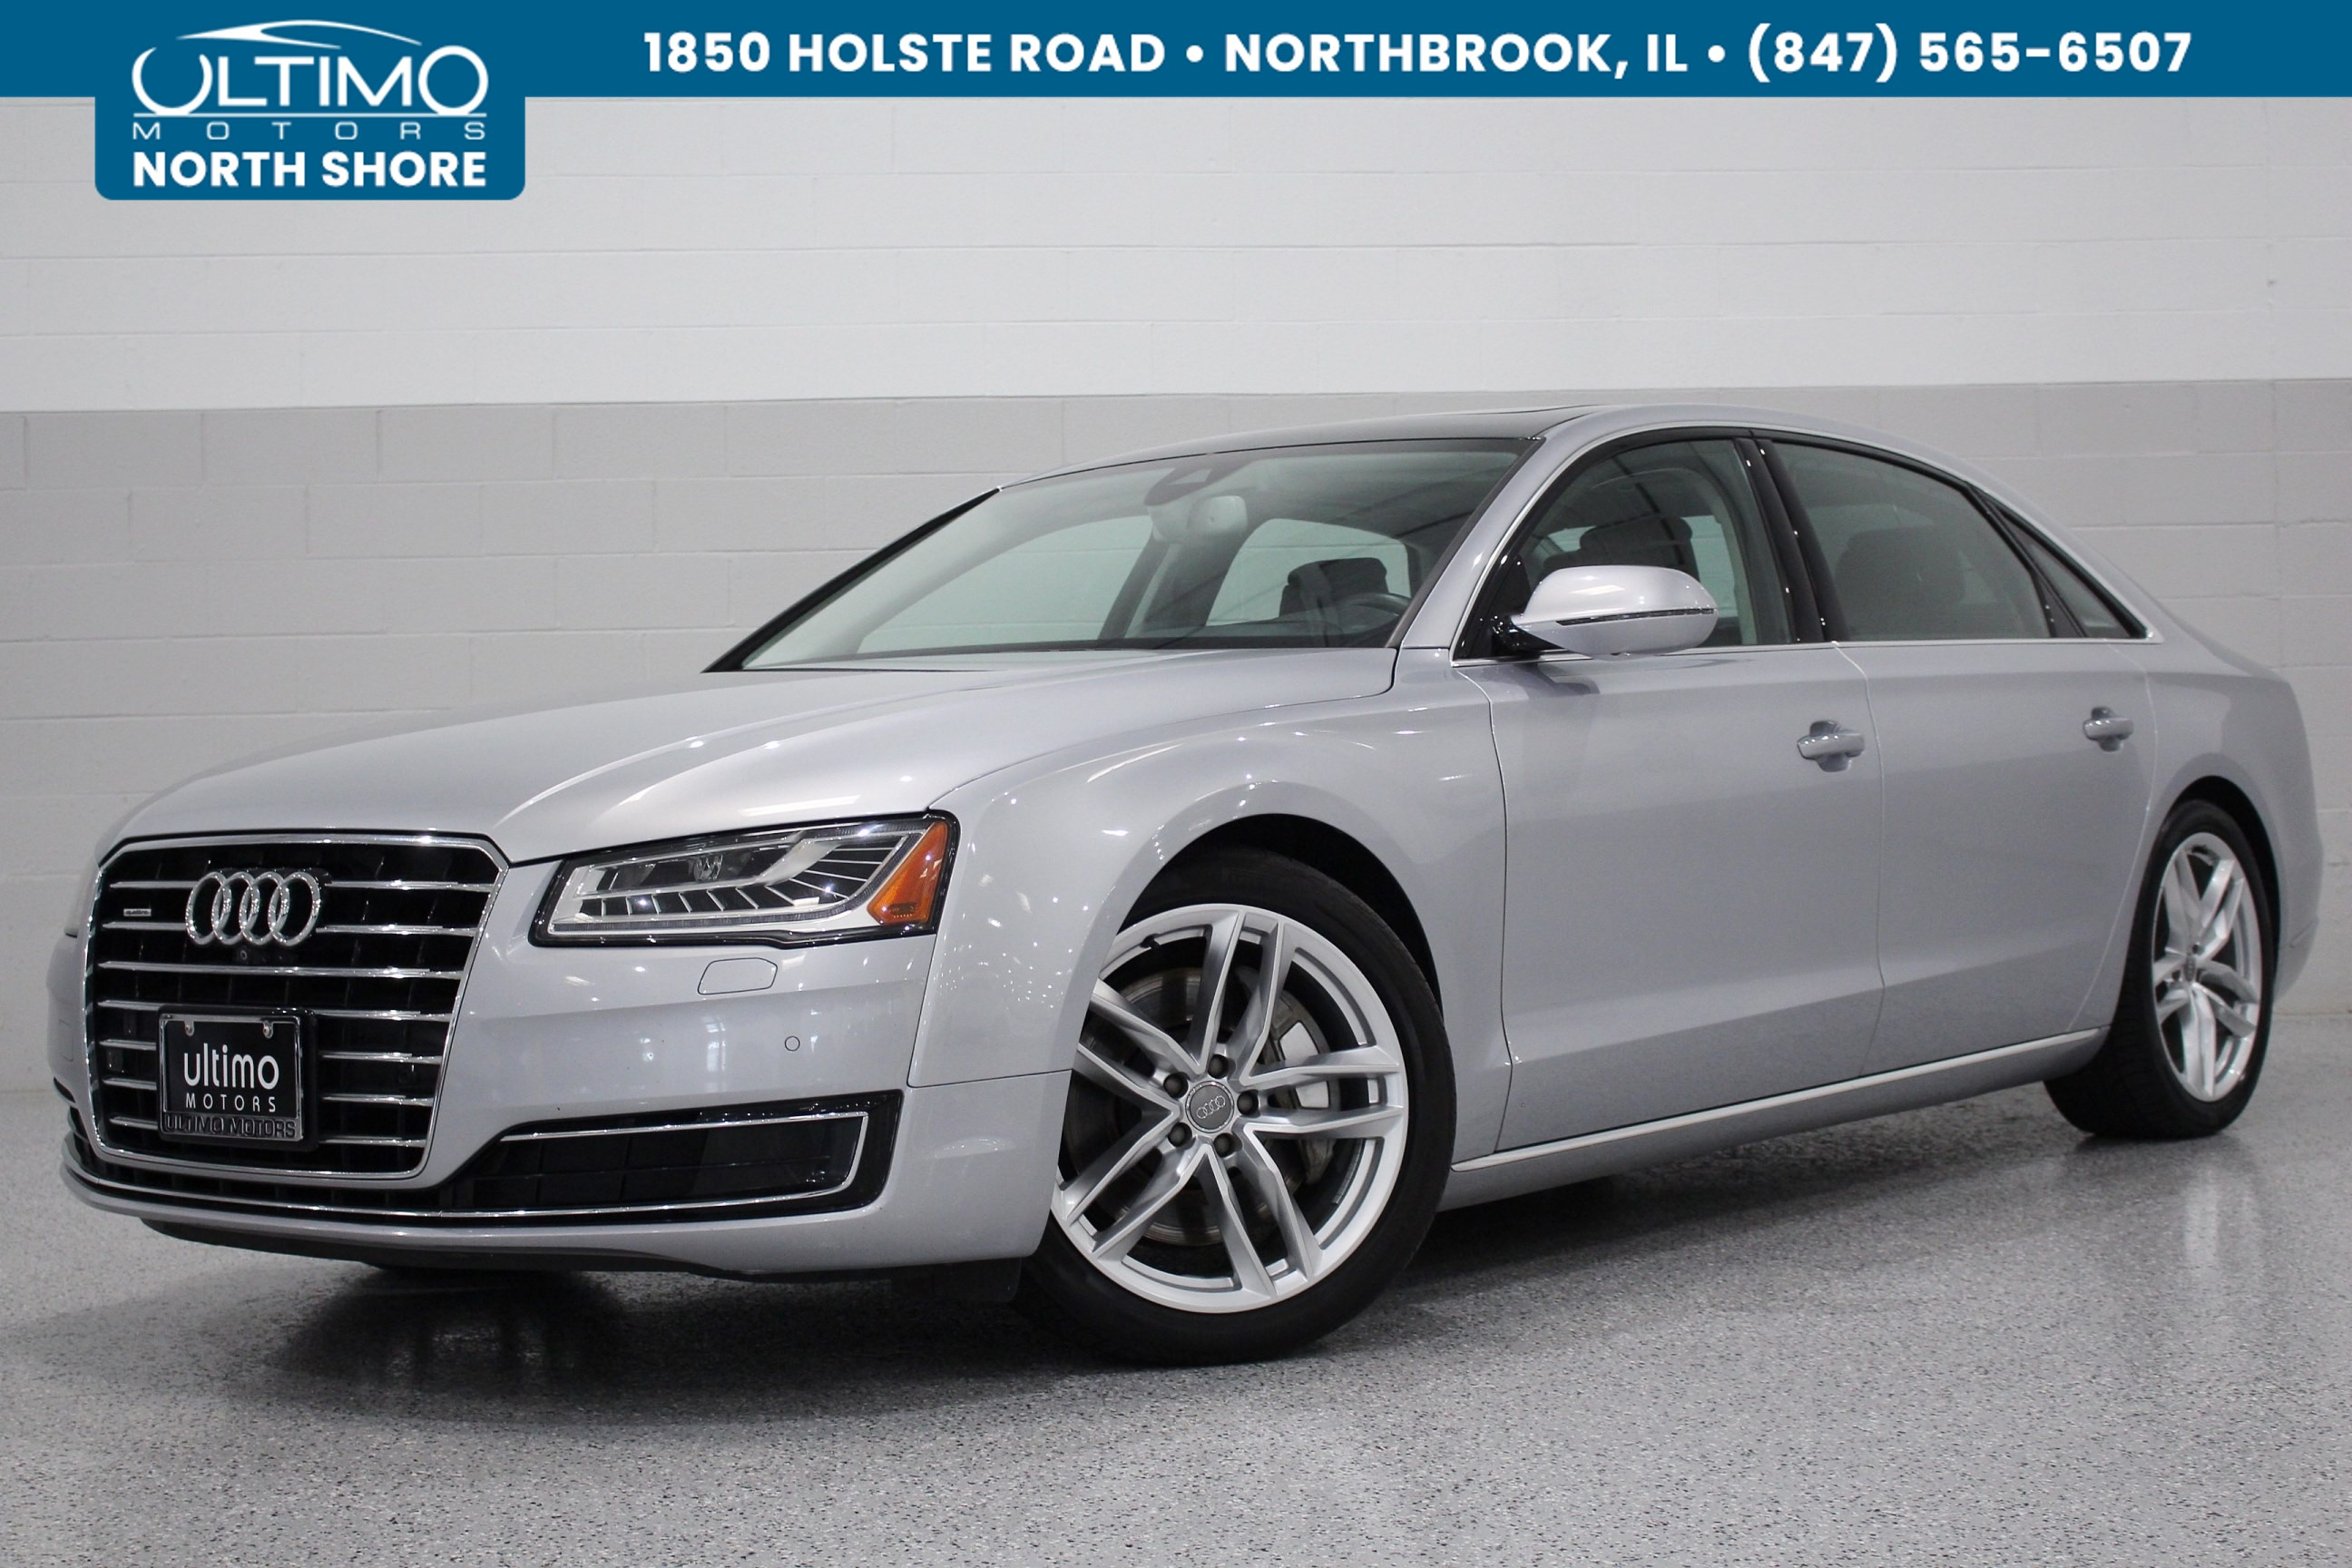 Pre-Owned 2015 Audi A8 L 4.0T, Premium, Sport, Luxury and Cold Weather Package.